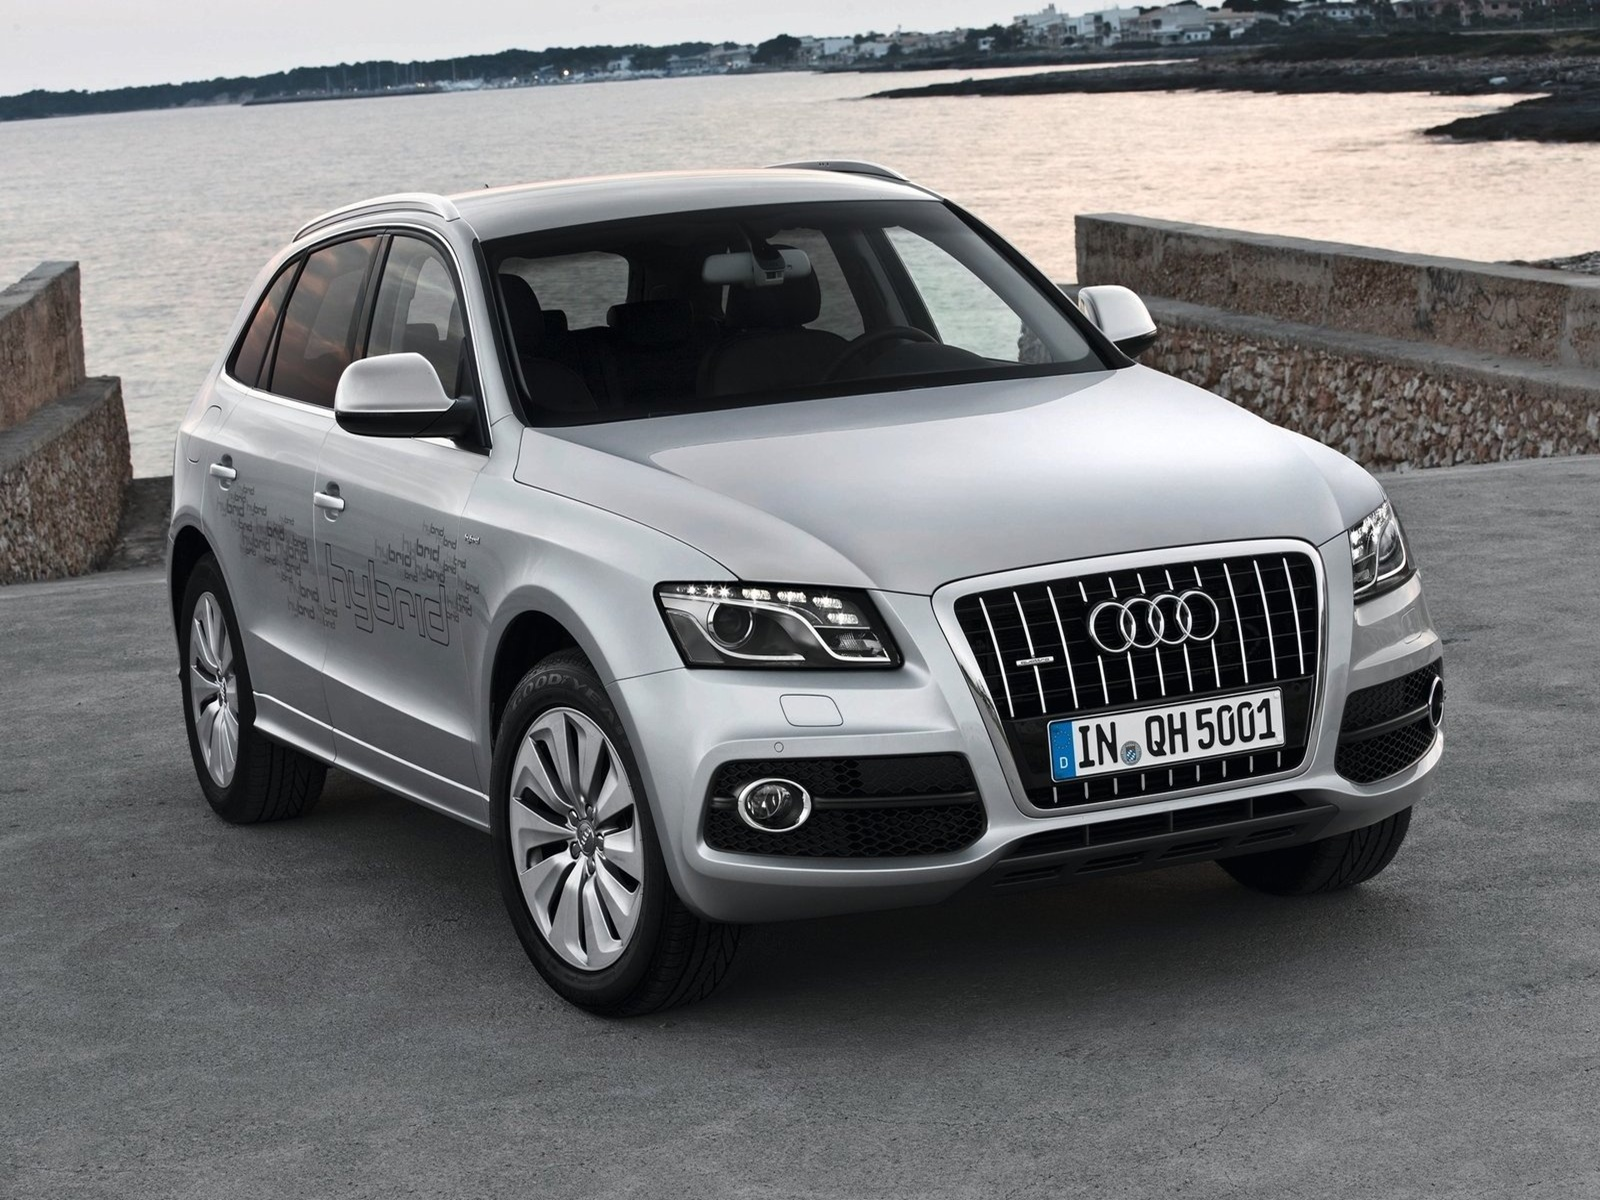 audi q5 hybrid quattro 2012 car barn sport. Black Bedroom Furniture Sets. Home Design Ideas